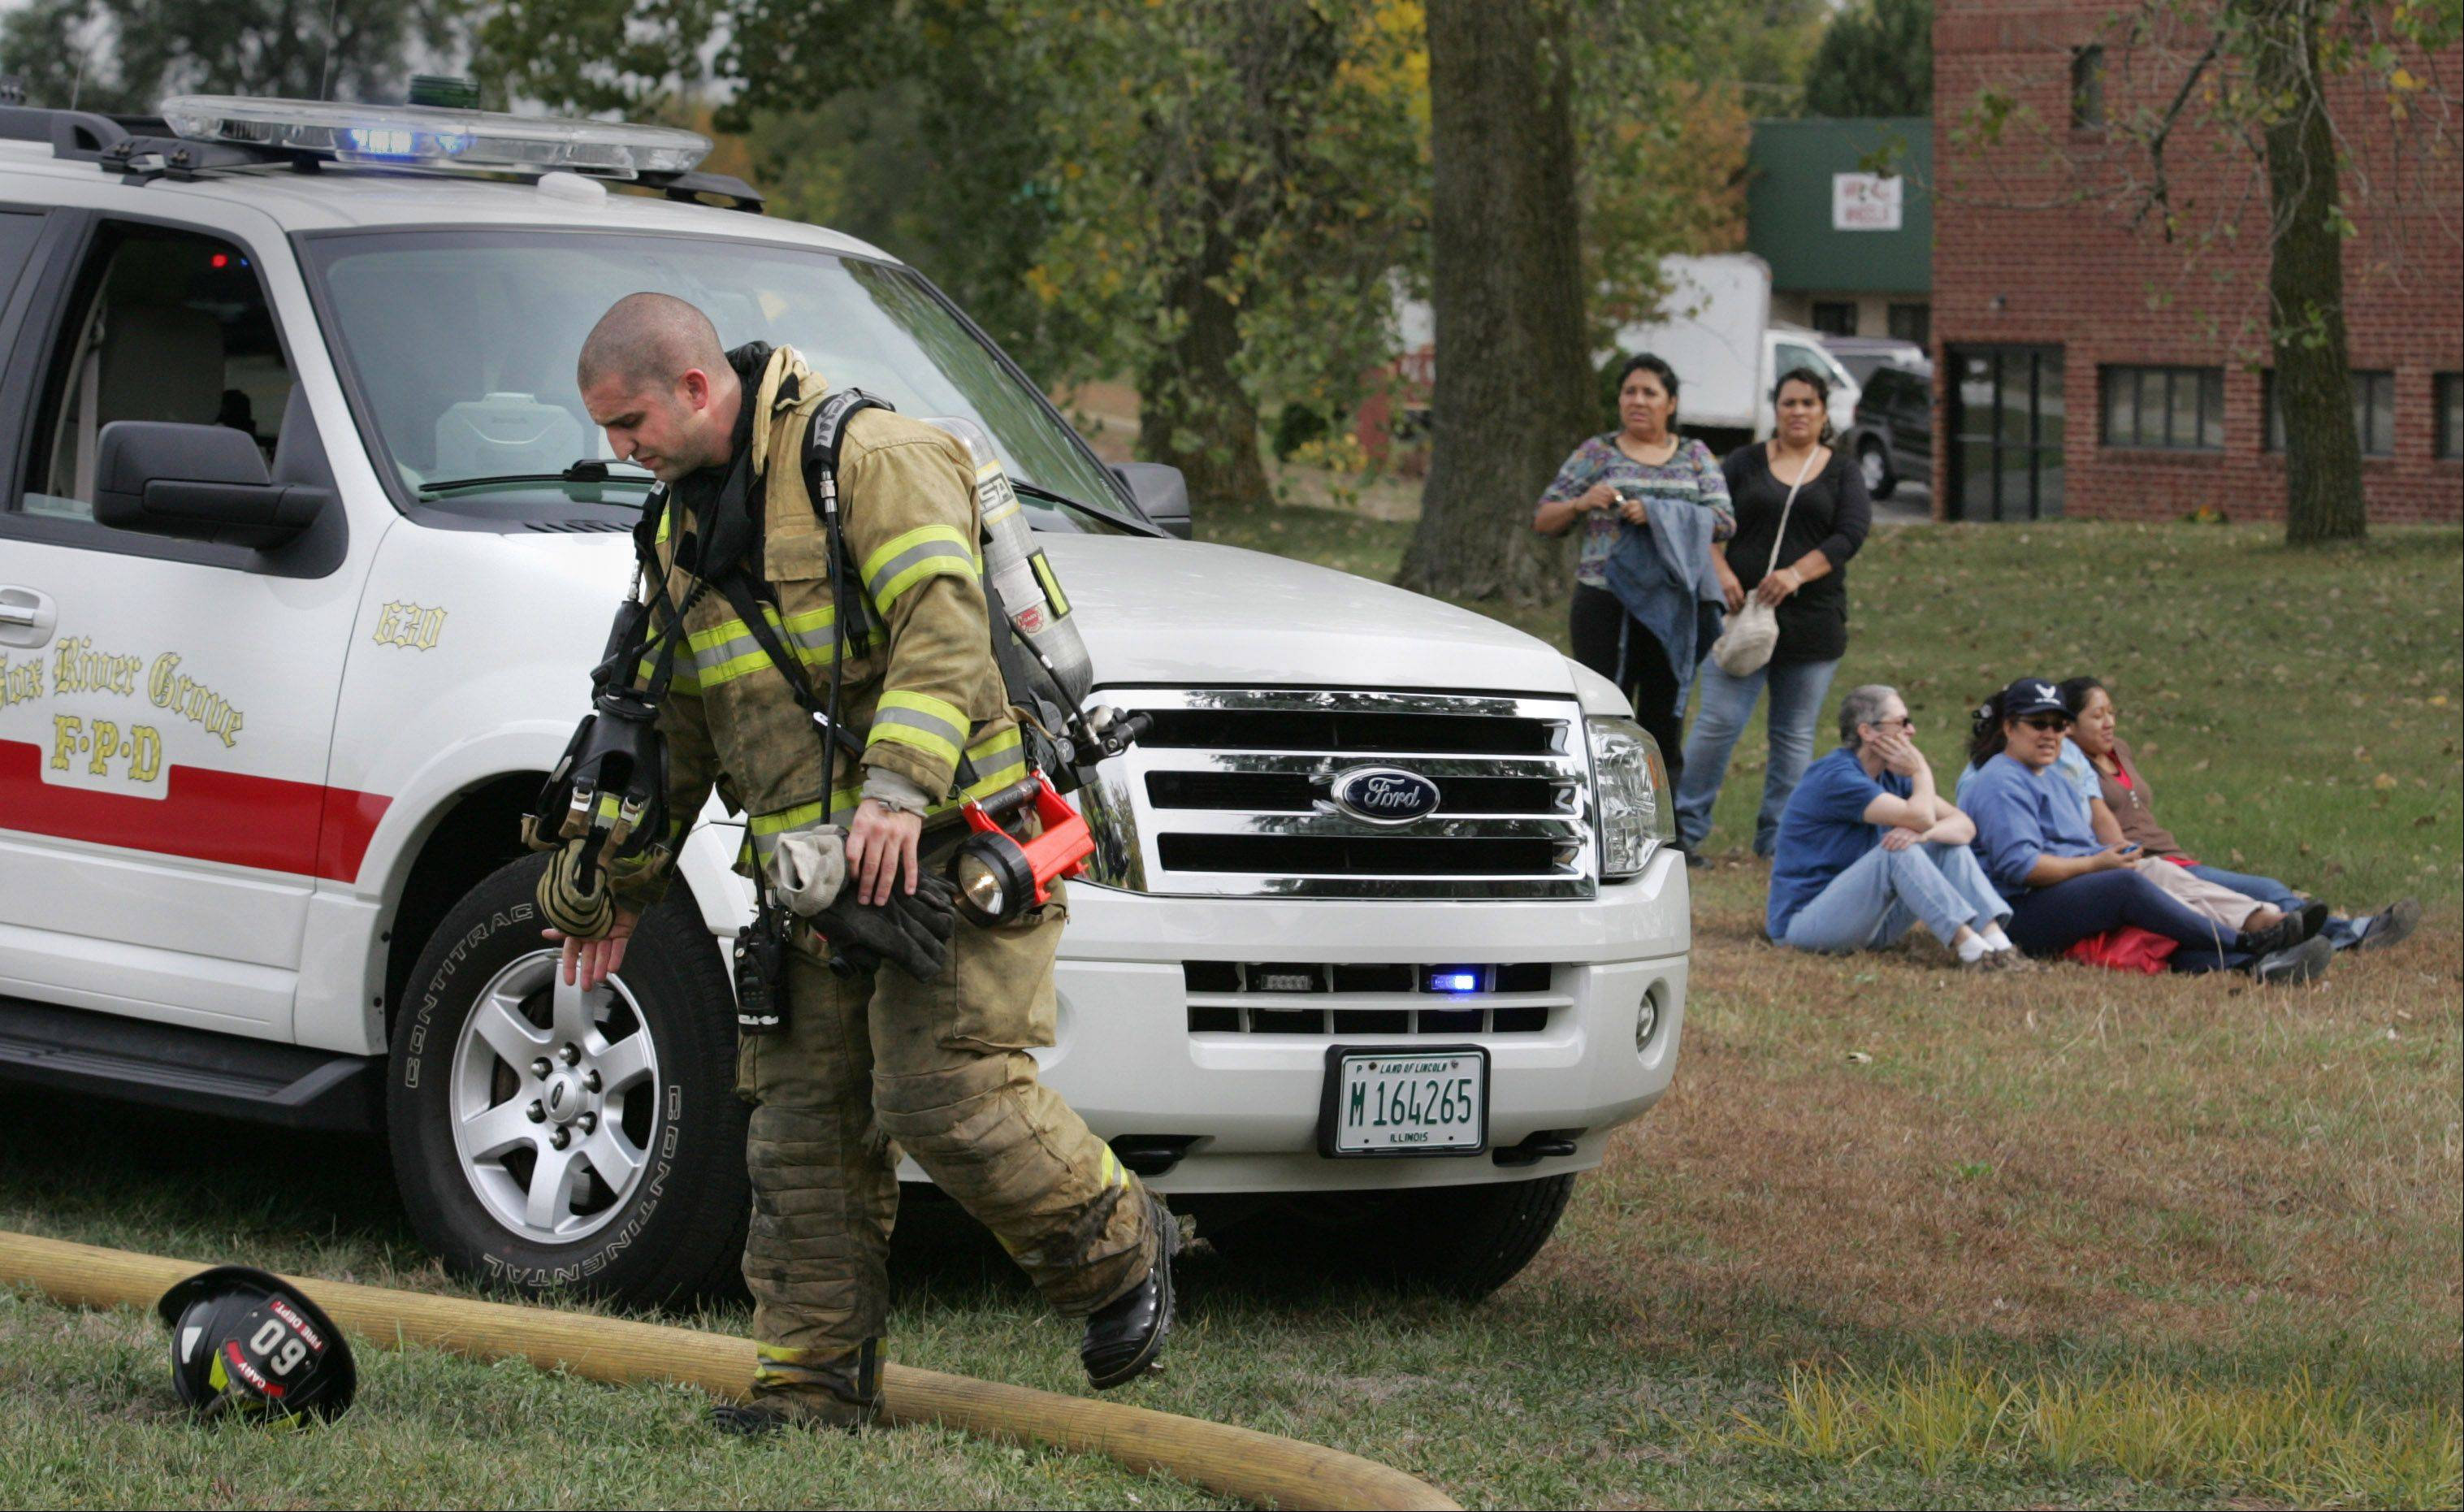 Cary firefighter Tony Diraimondo removes some of his gear after working inside the Tru-Cut factory building in Cary Monday afternoon. Plant employees sit in the grass behind him as fire departments work at the scene.